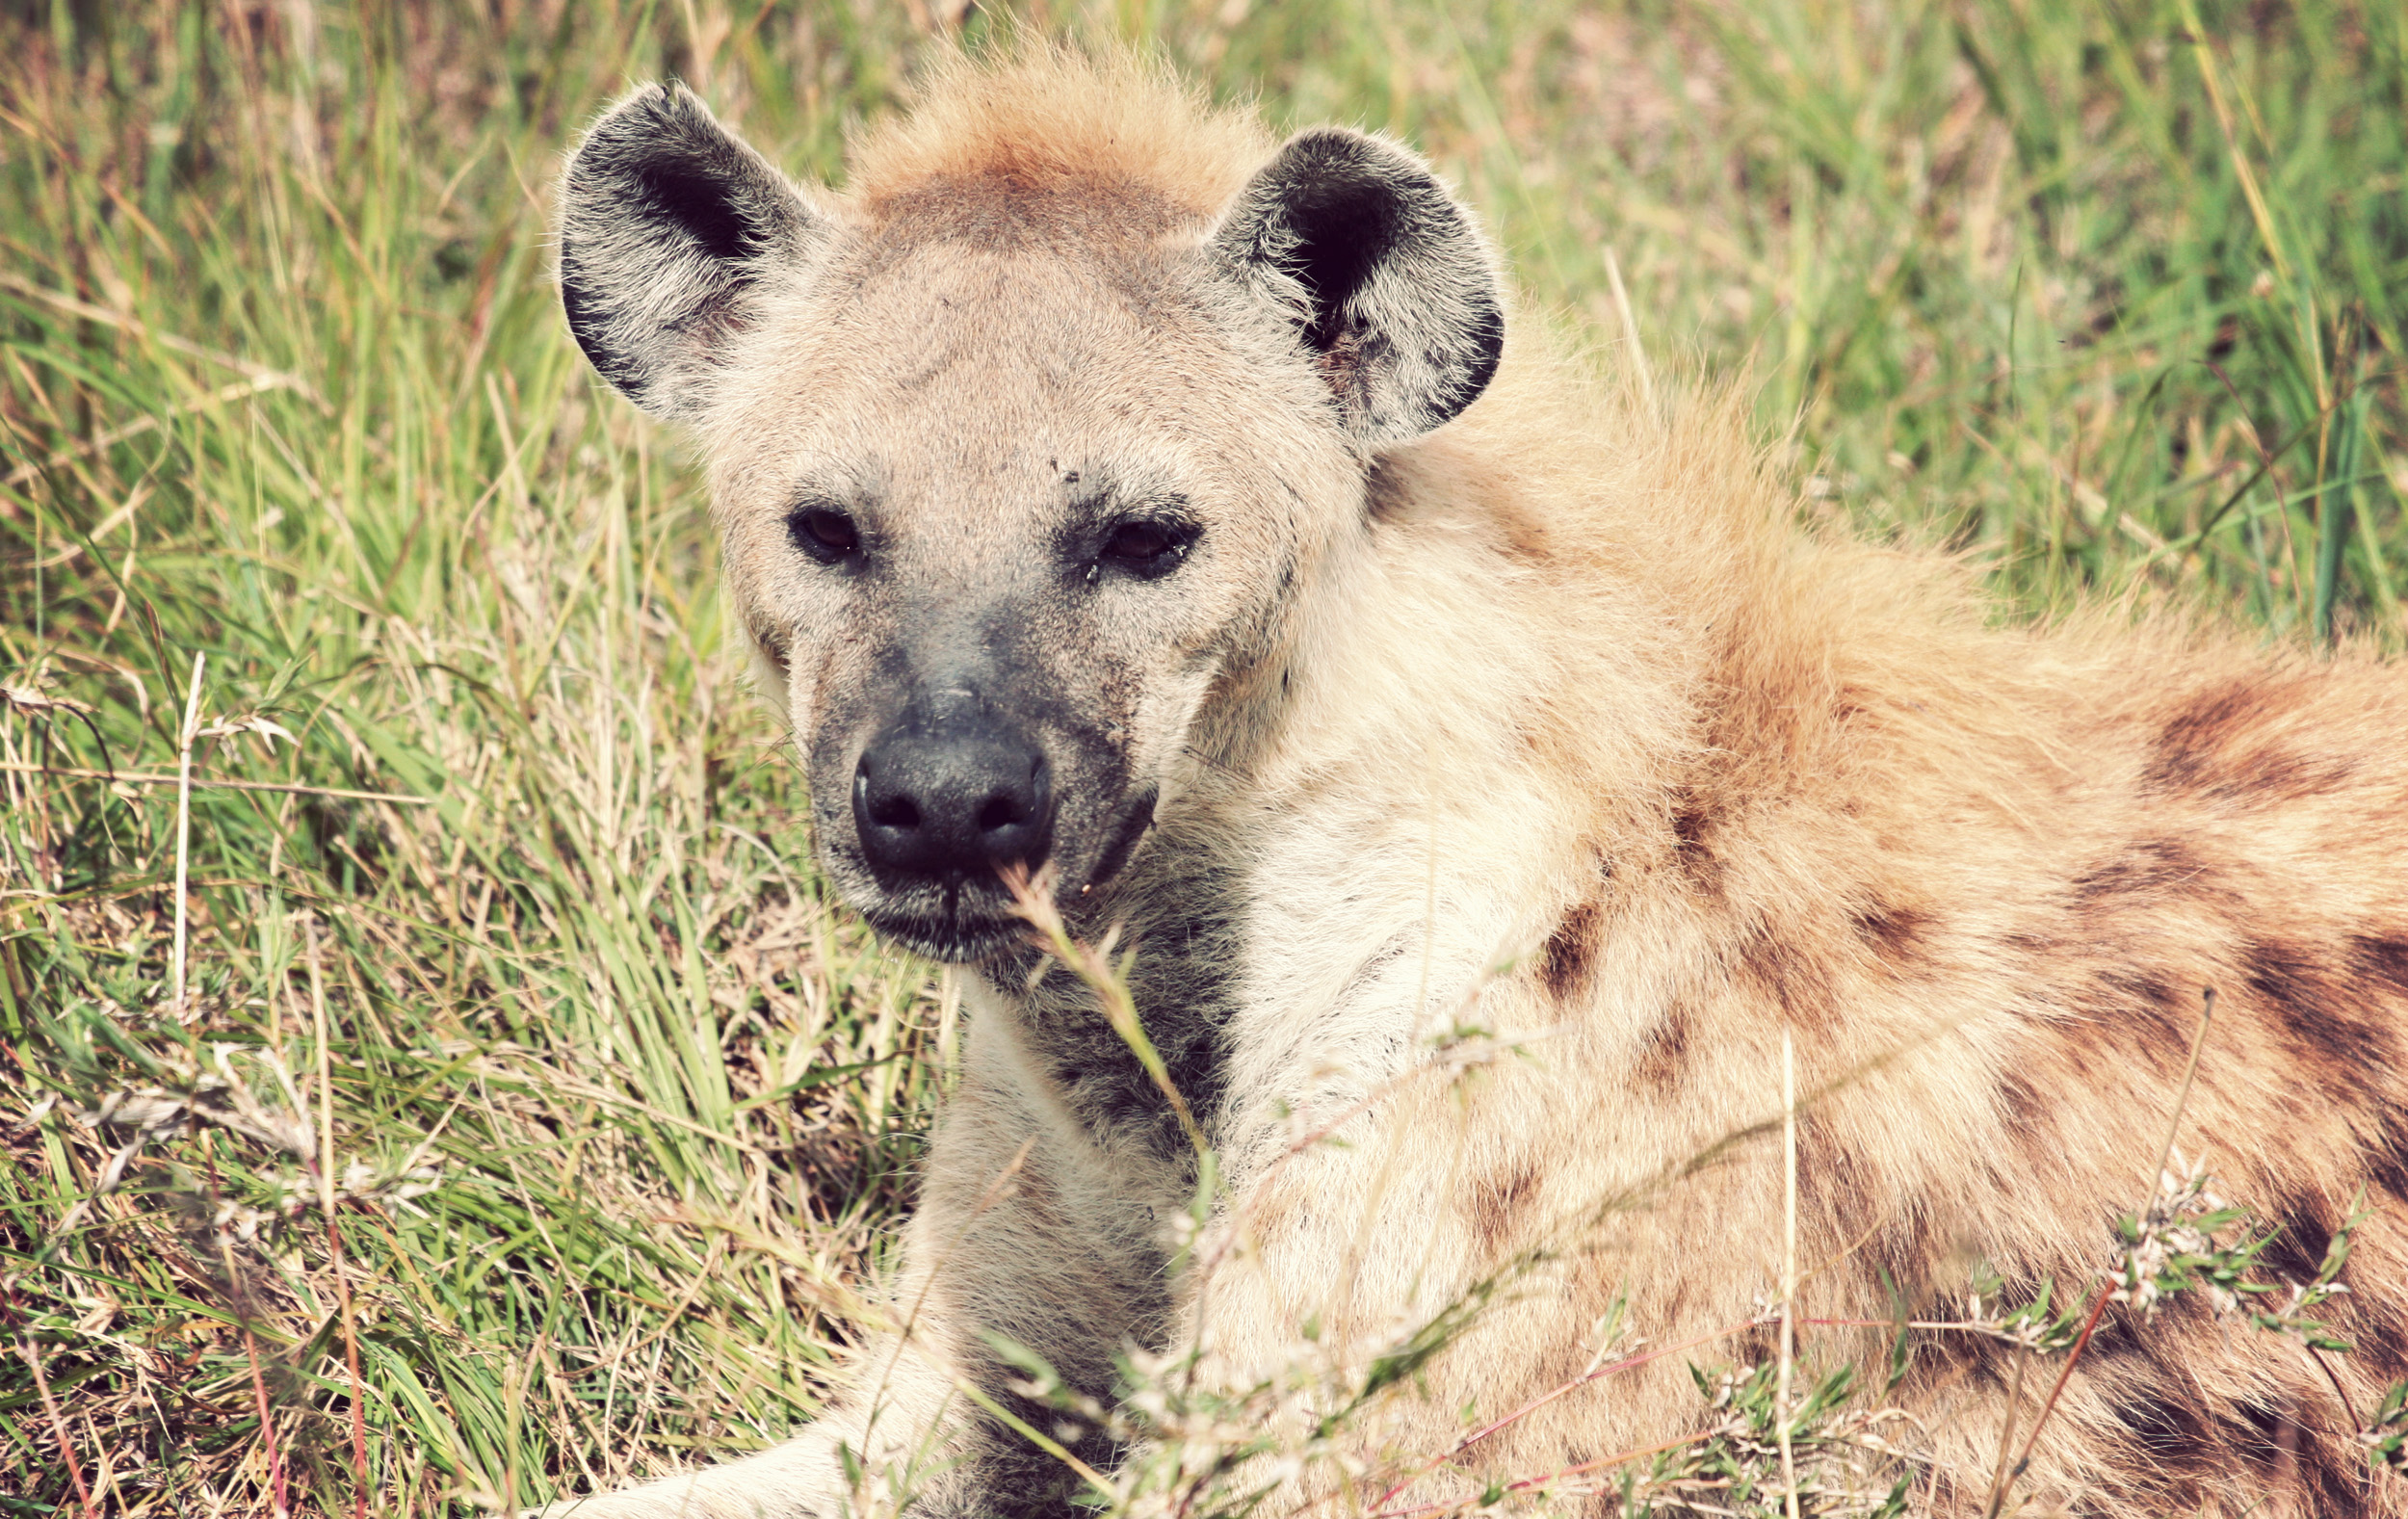 This is what a hyena actually looks like. Who knew they were kind of cute?